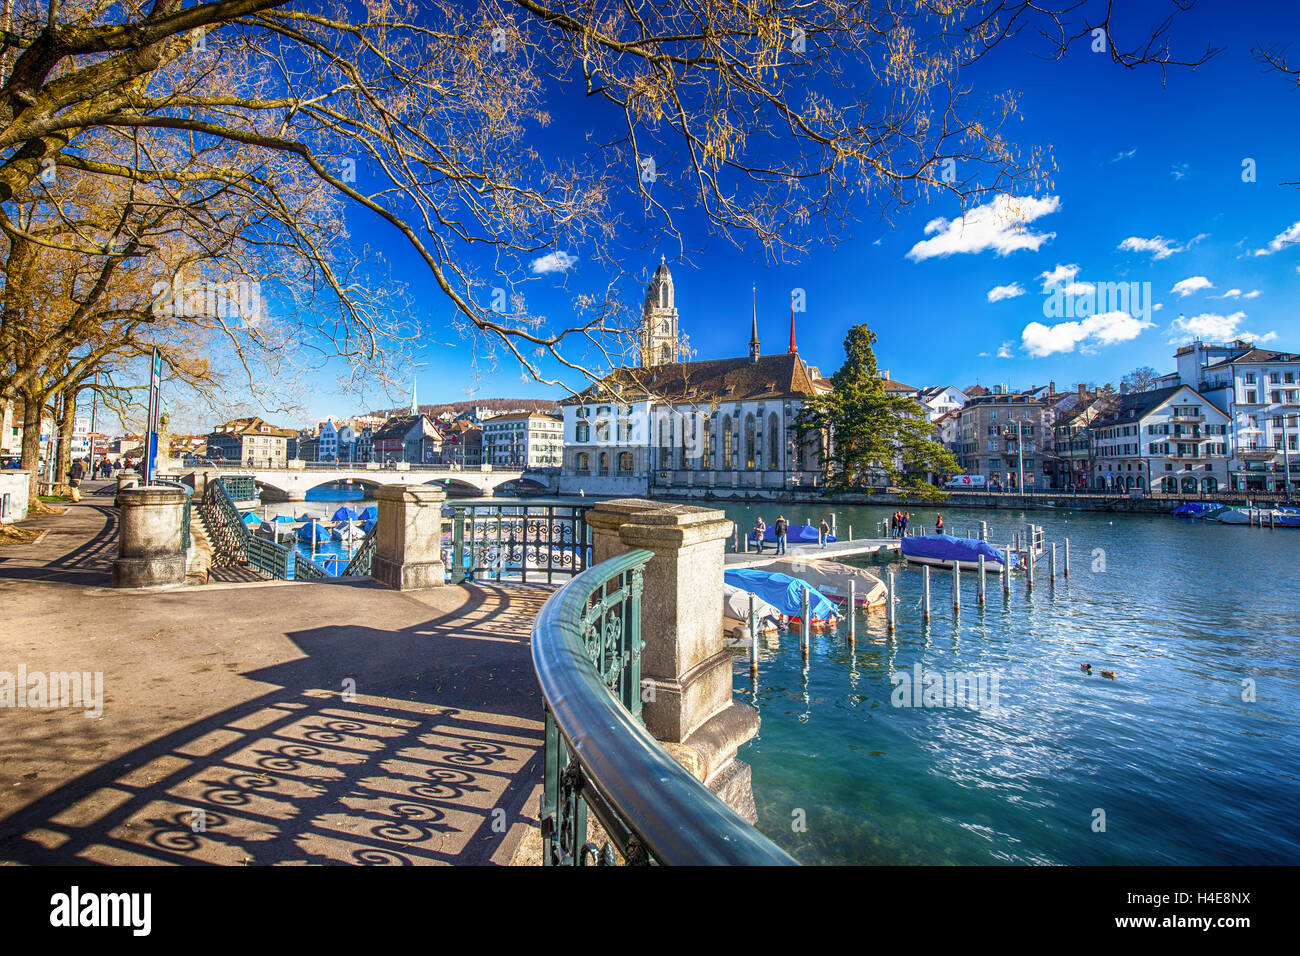 View of historic Zurich city center with famous Grossmunster Church and Limmat river - Stock Image